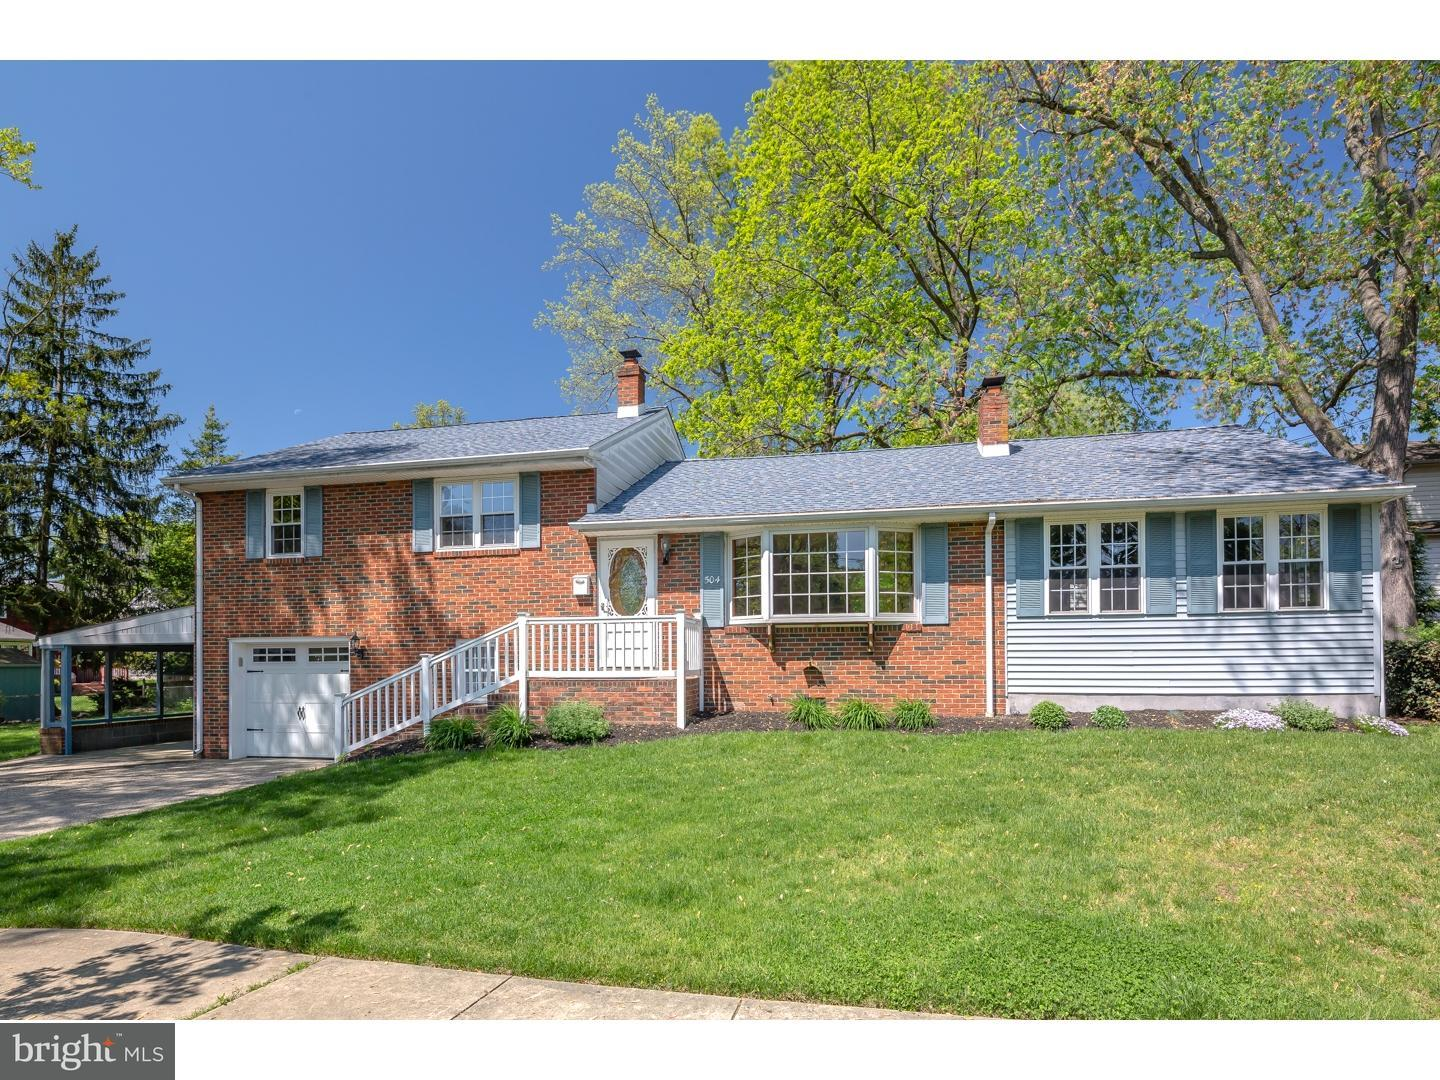 Haddon Heights Real Estate   Find Homes for Sale in Haddon Heights ...